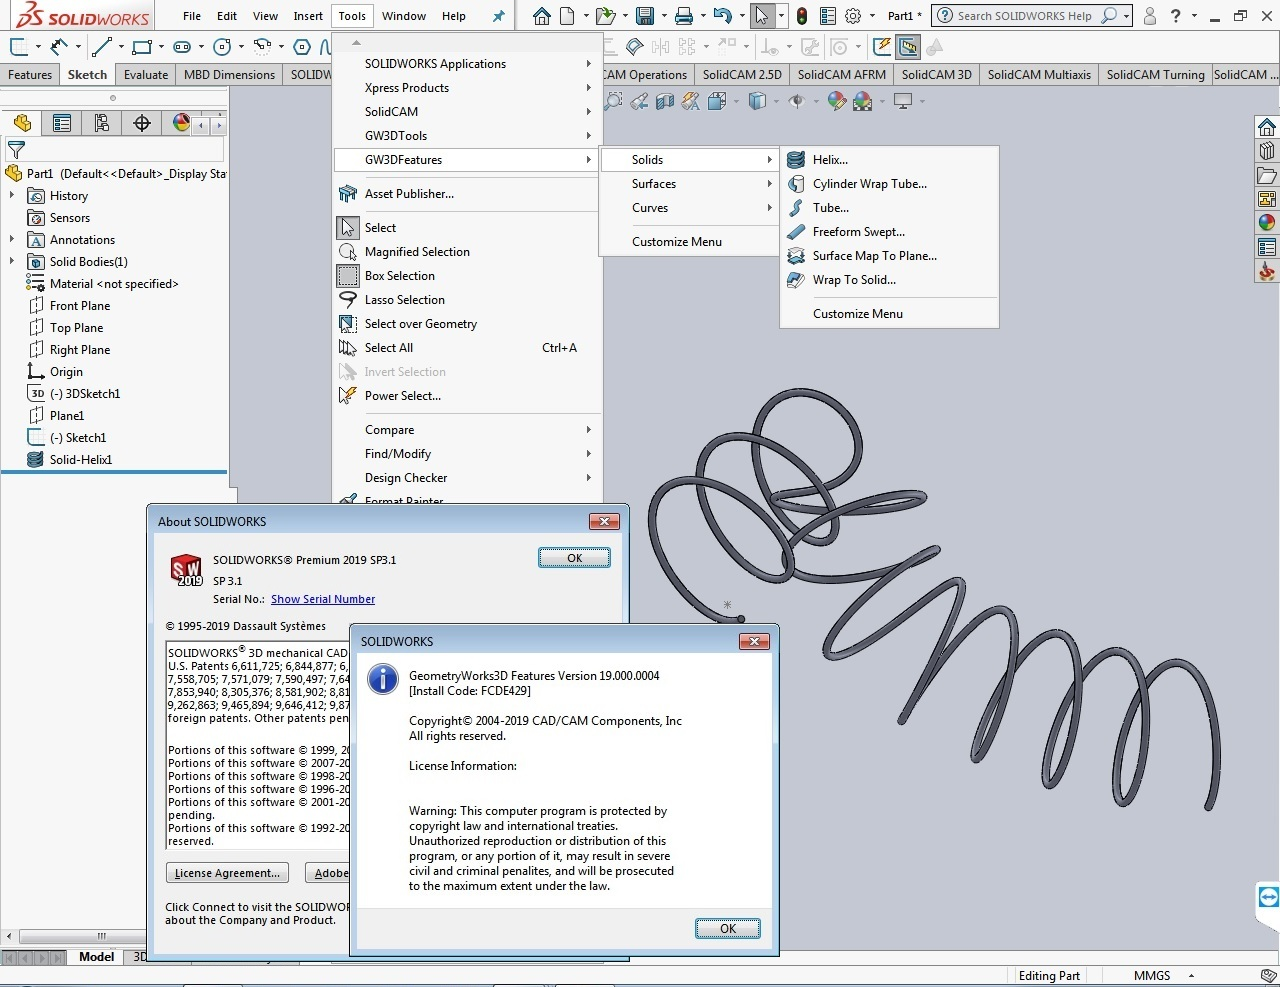 Download GeometryWorks 3D Features V19.0.4 for SolidWorks 2019 full